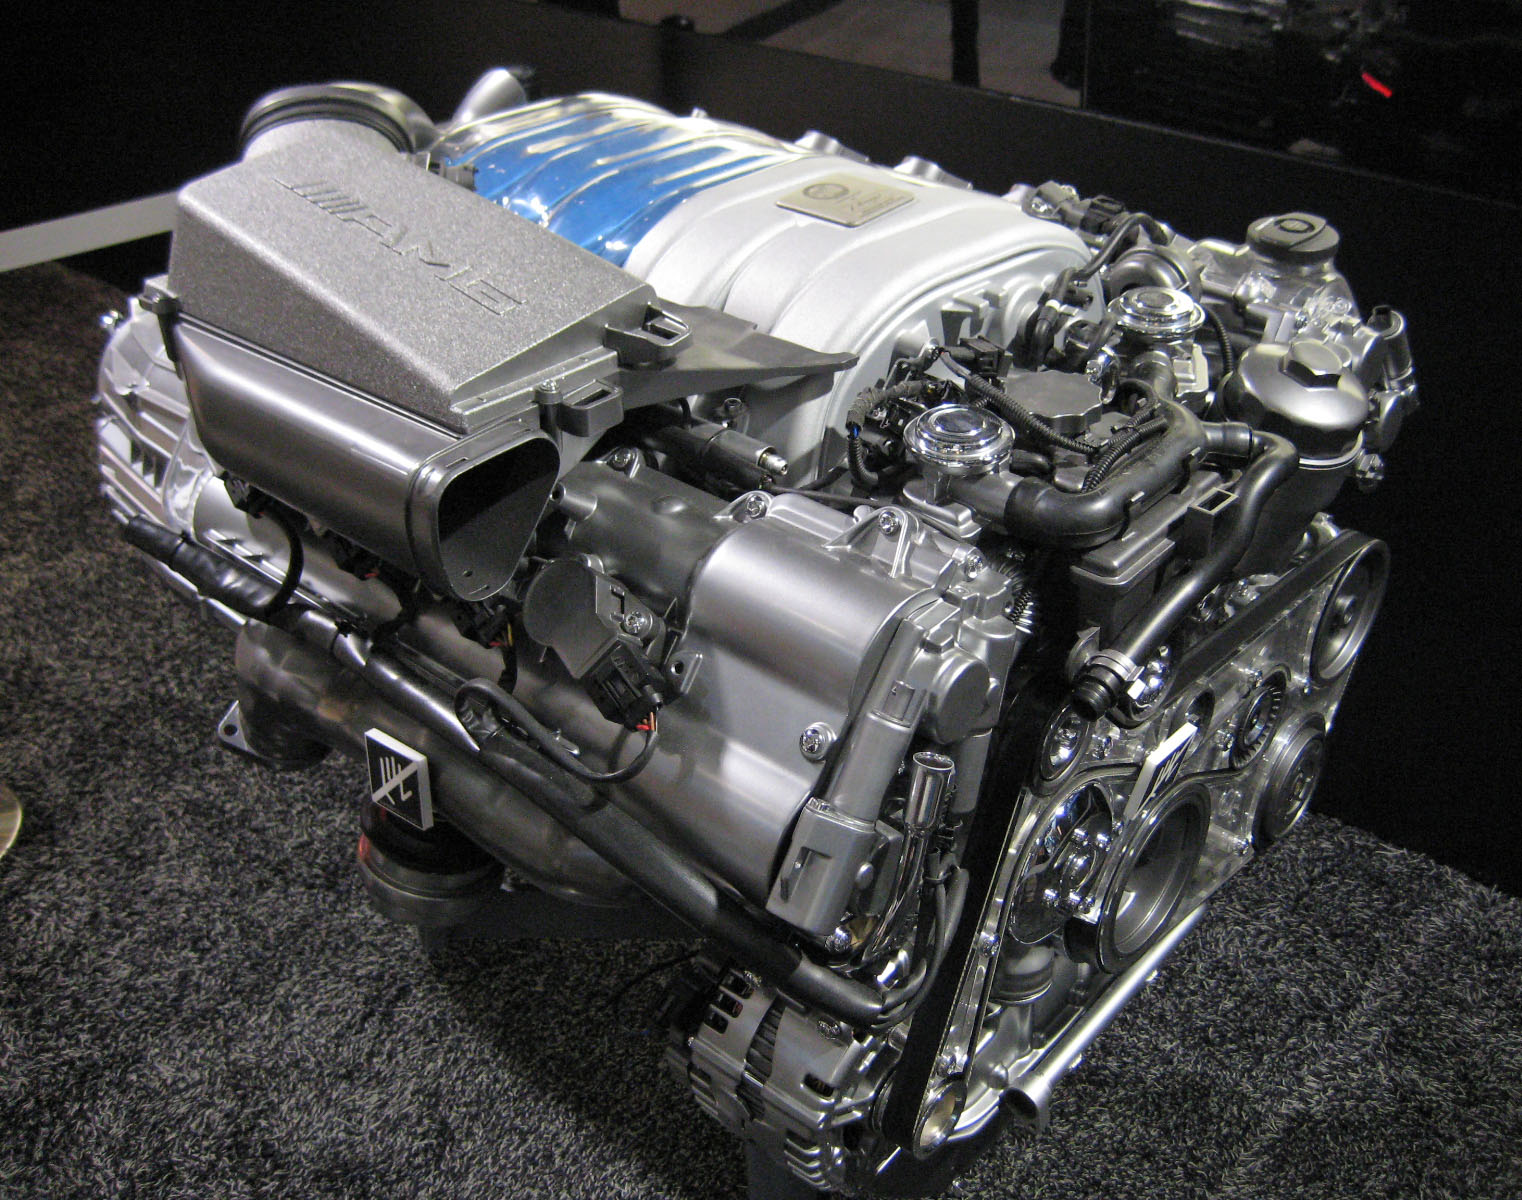 Mercedes benz m156 engine wikipedia for Motor mercedes benz